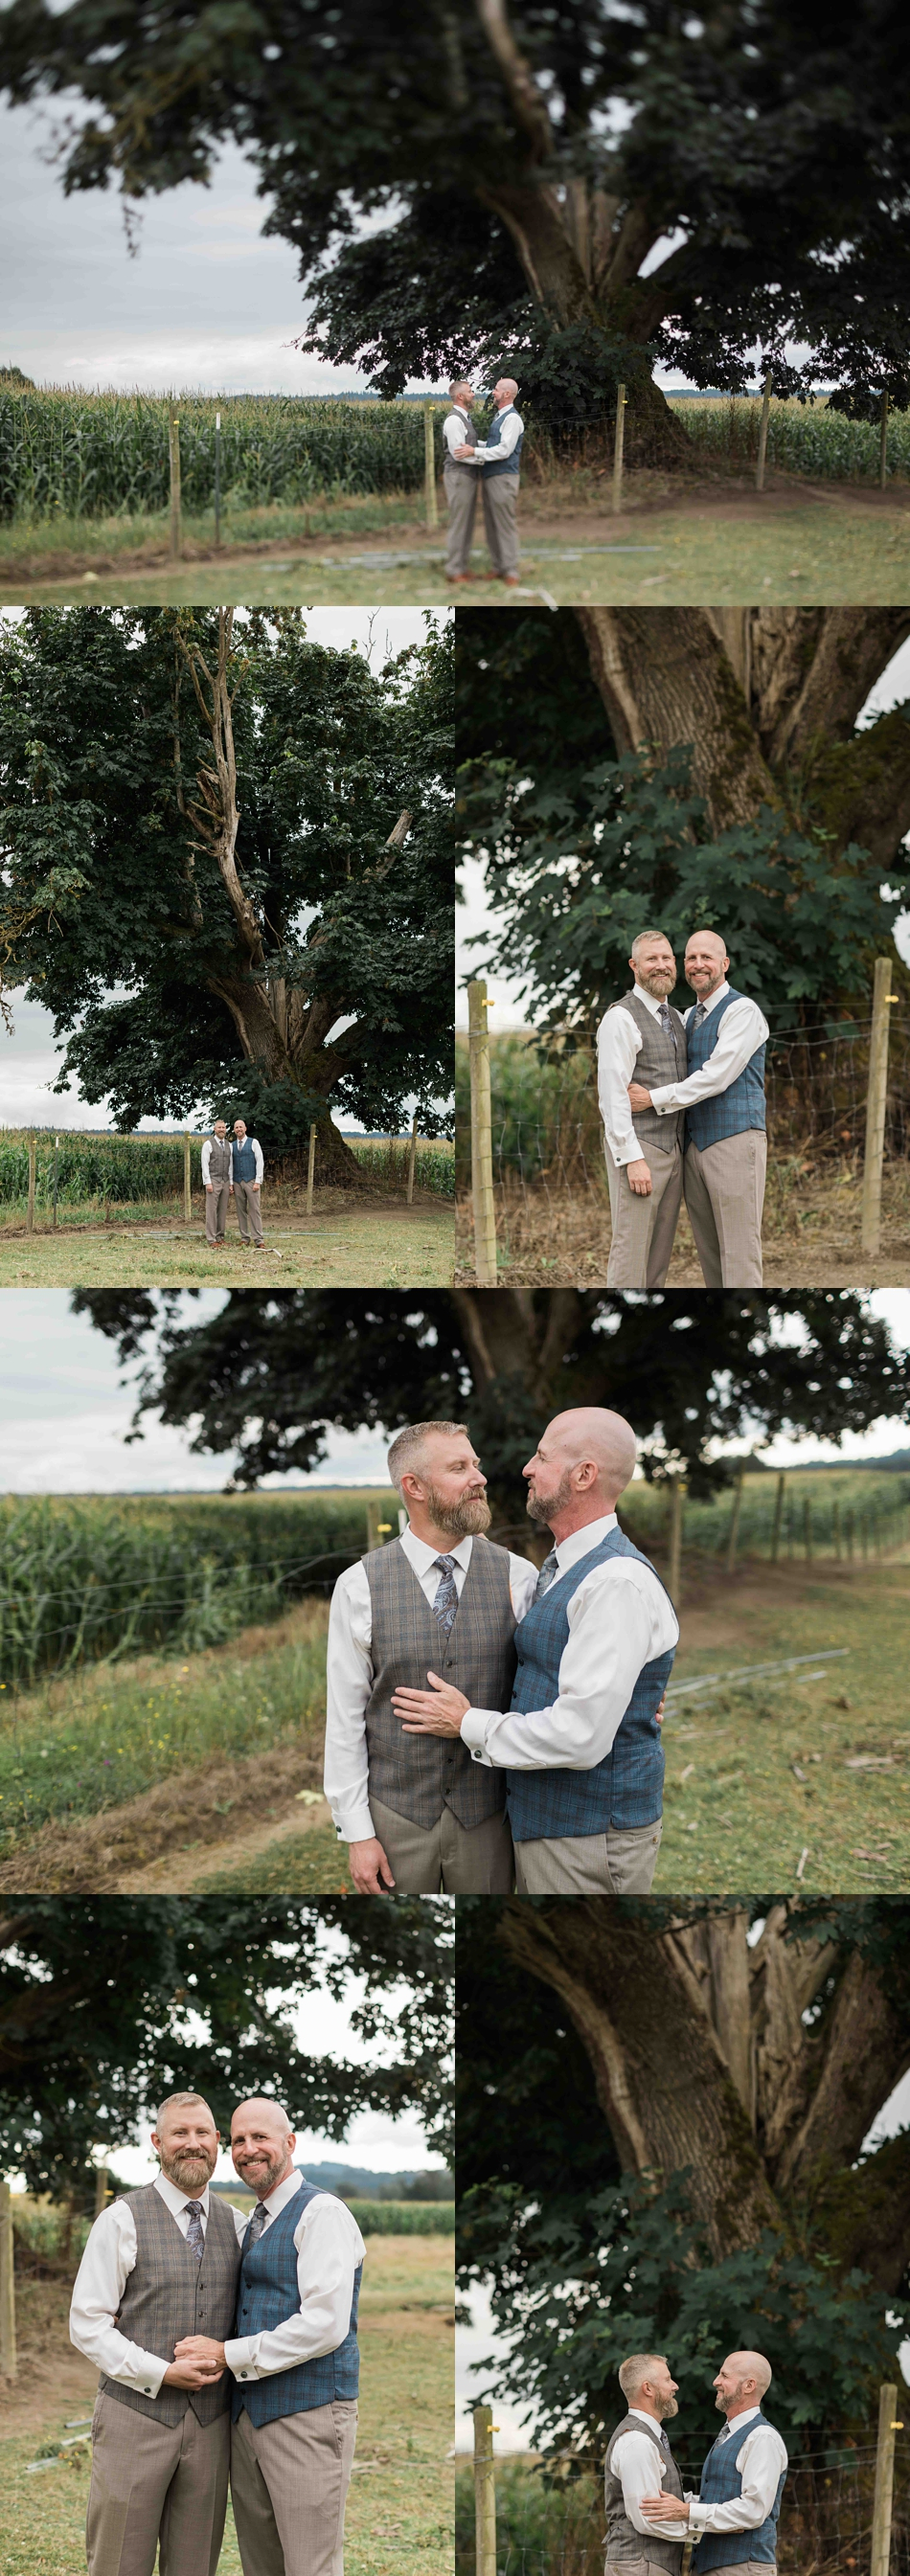 Tender moments at Falling Water Gardens in Monroe. Photographs by Joanna Monger Photography, Snohomish's Best Wedding Photographer.